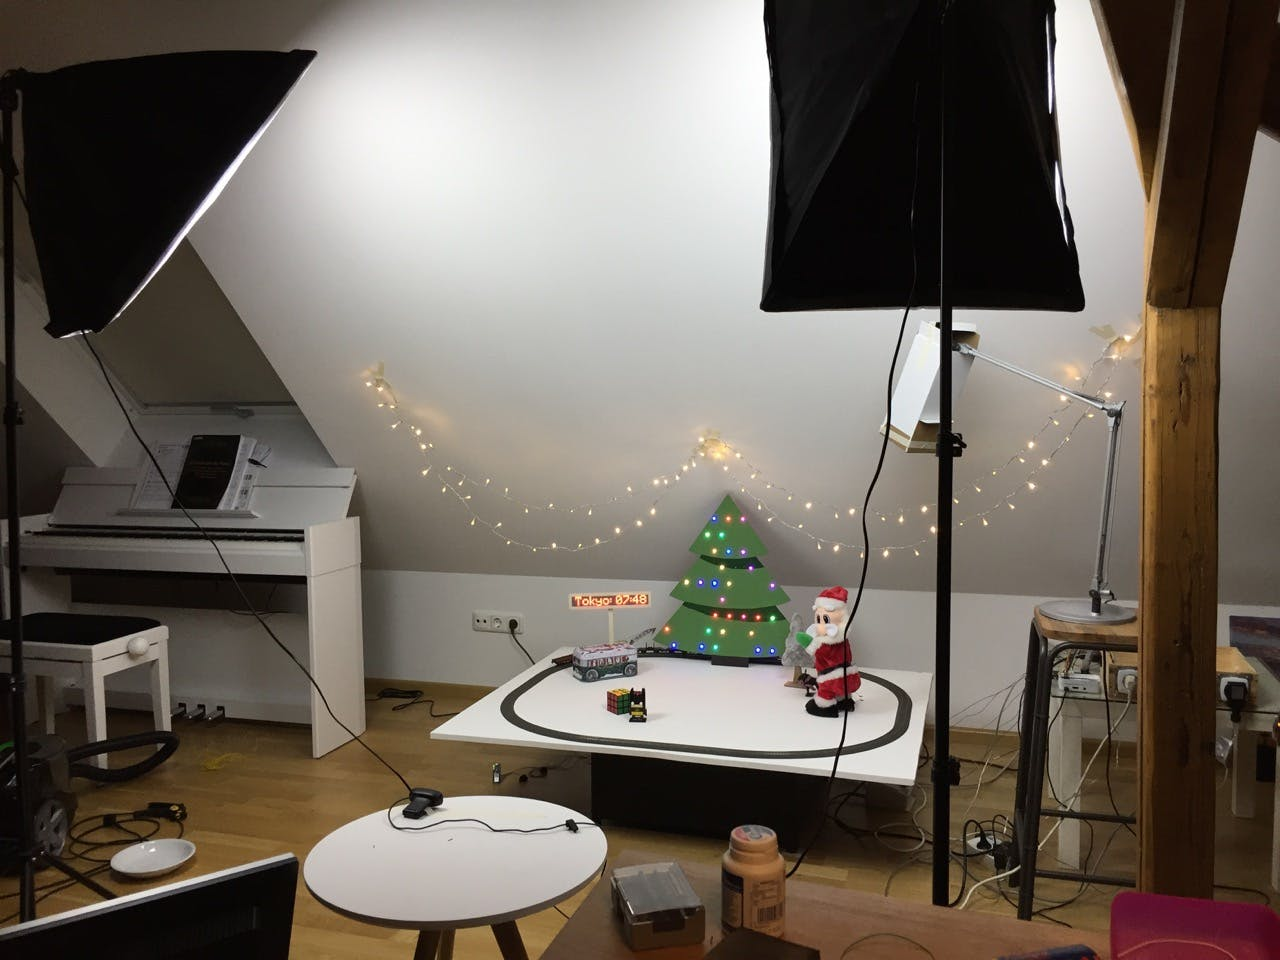 I Let Everyone on the Internet Control My X-Mas Decoration - Hackster io